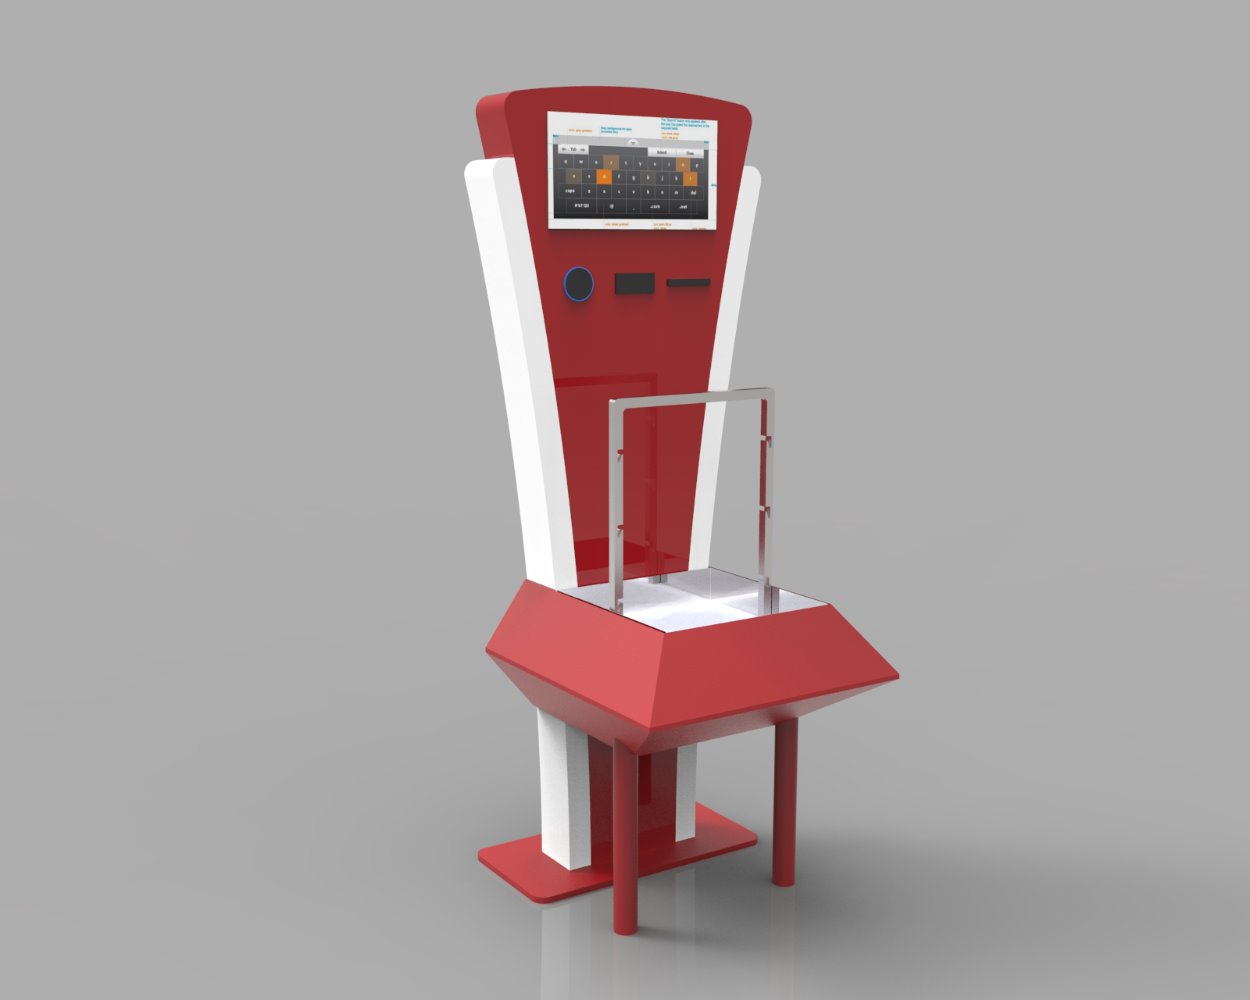 Commercial design research- Kiosks